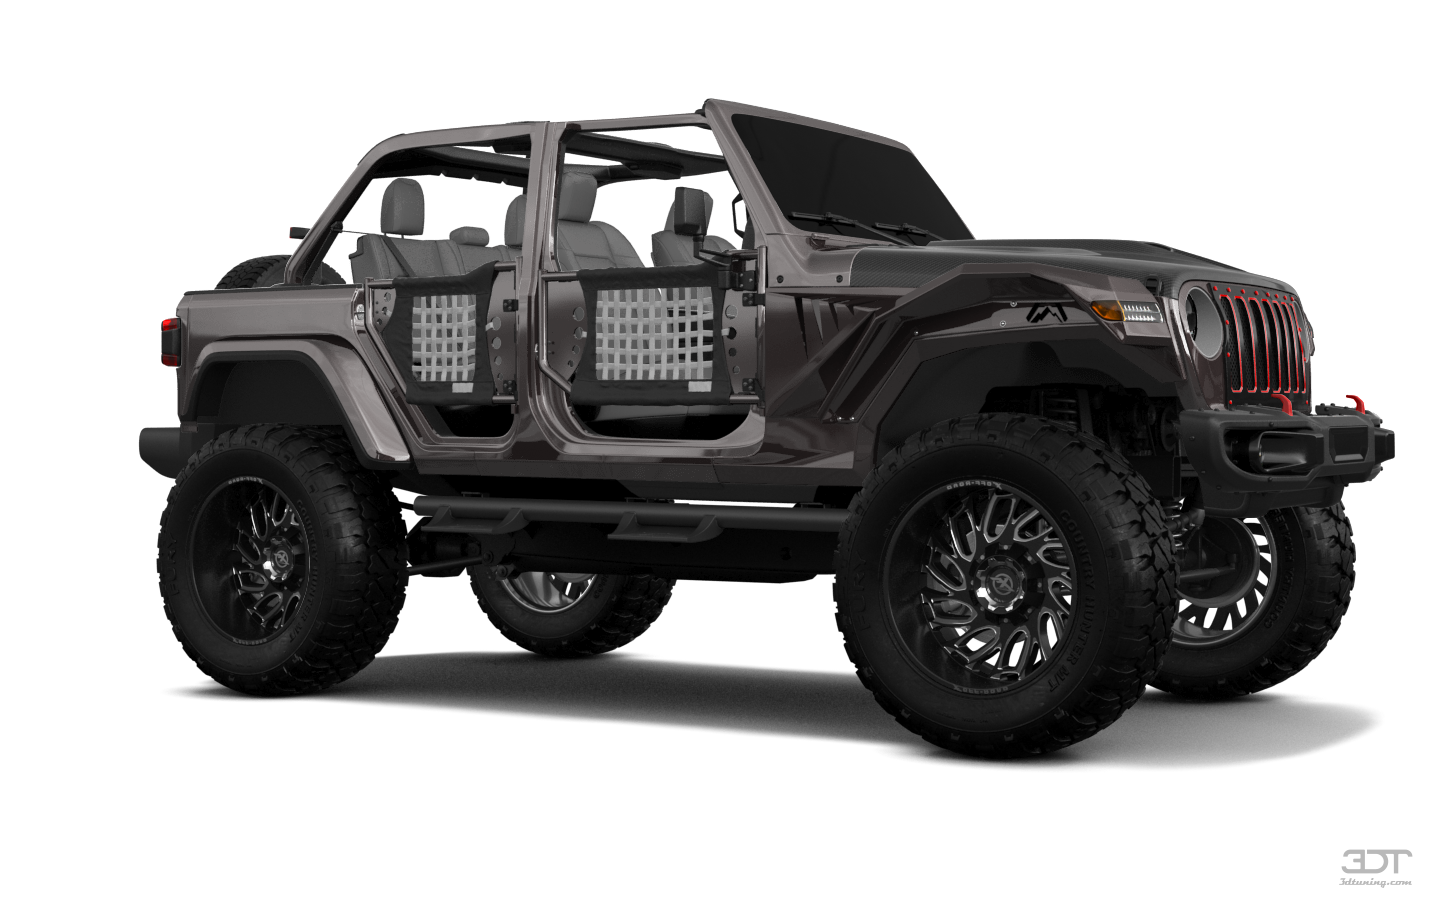 Jeep Wrangler Rubicon (JL) 4 Door SUV 2018 tuning